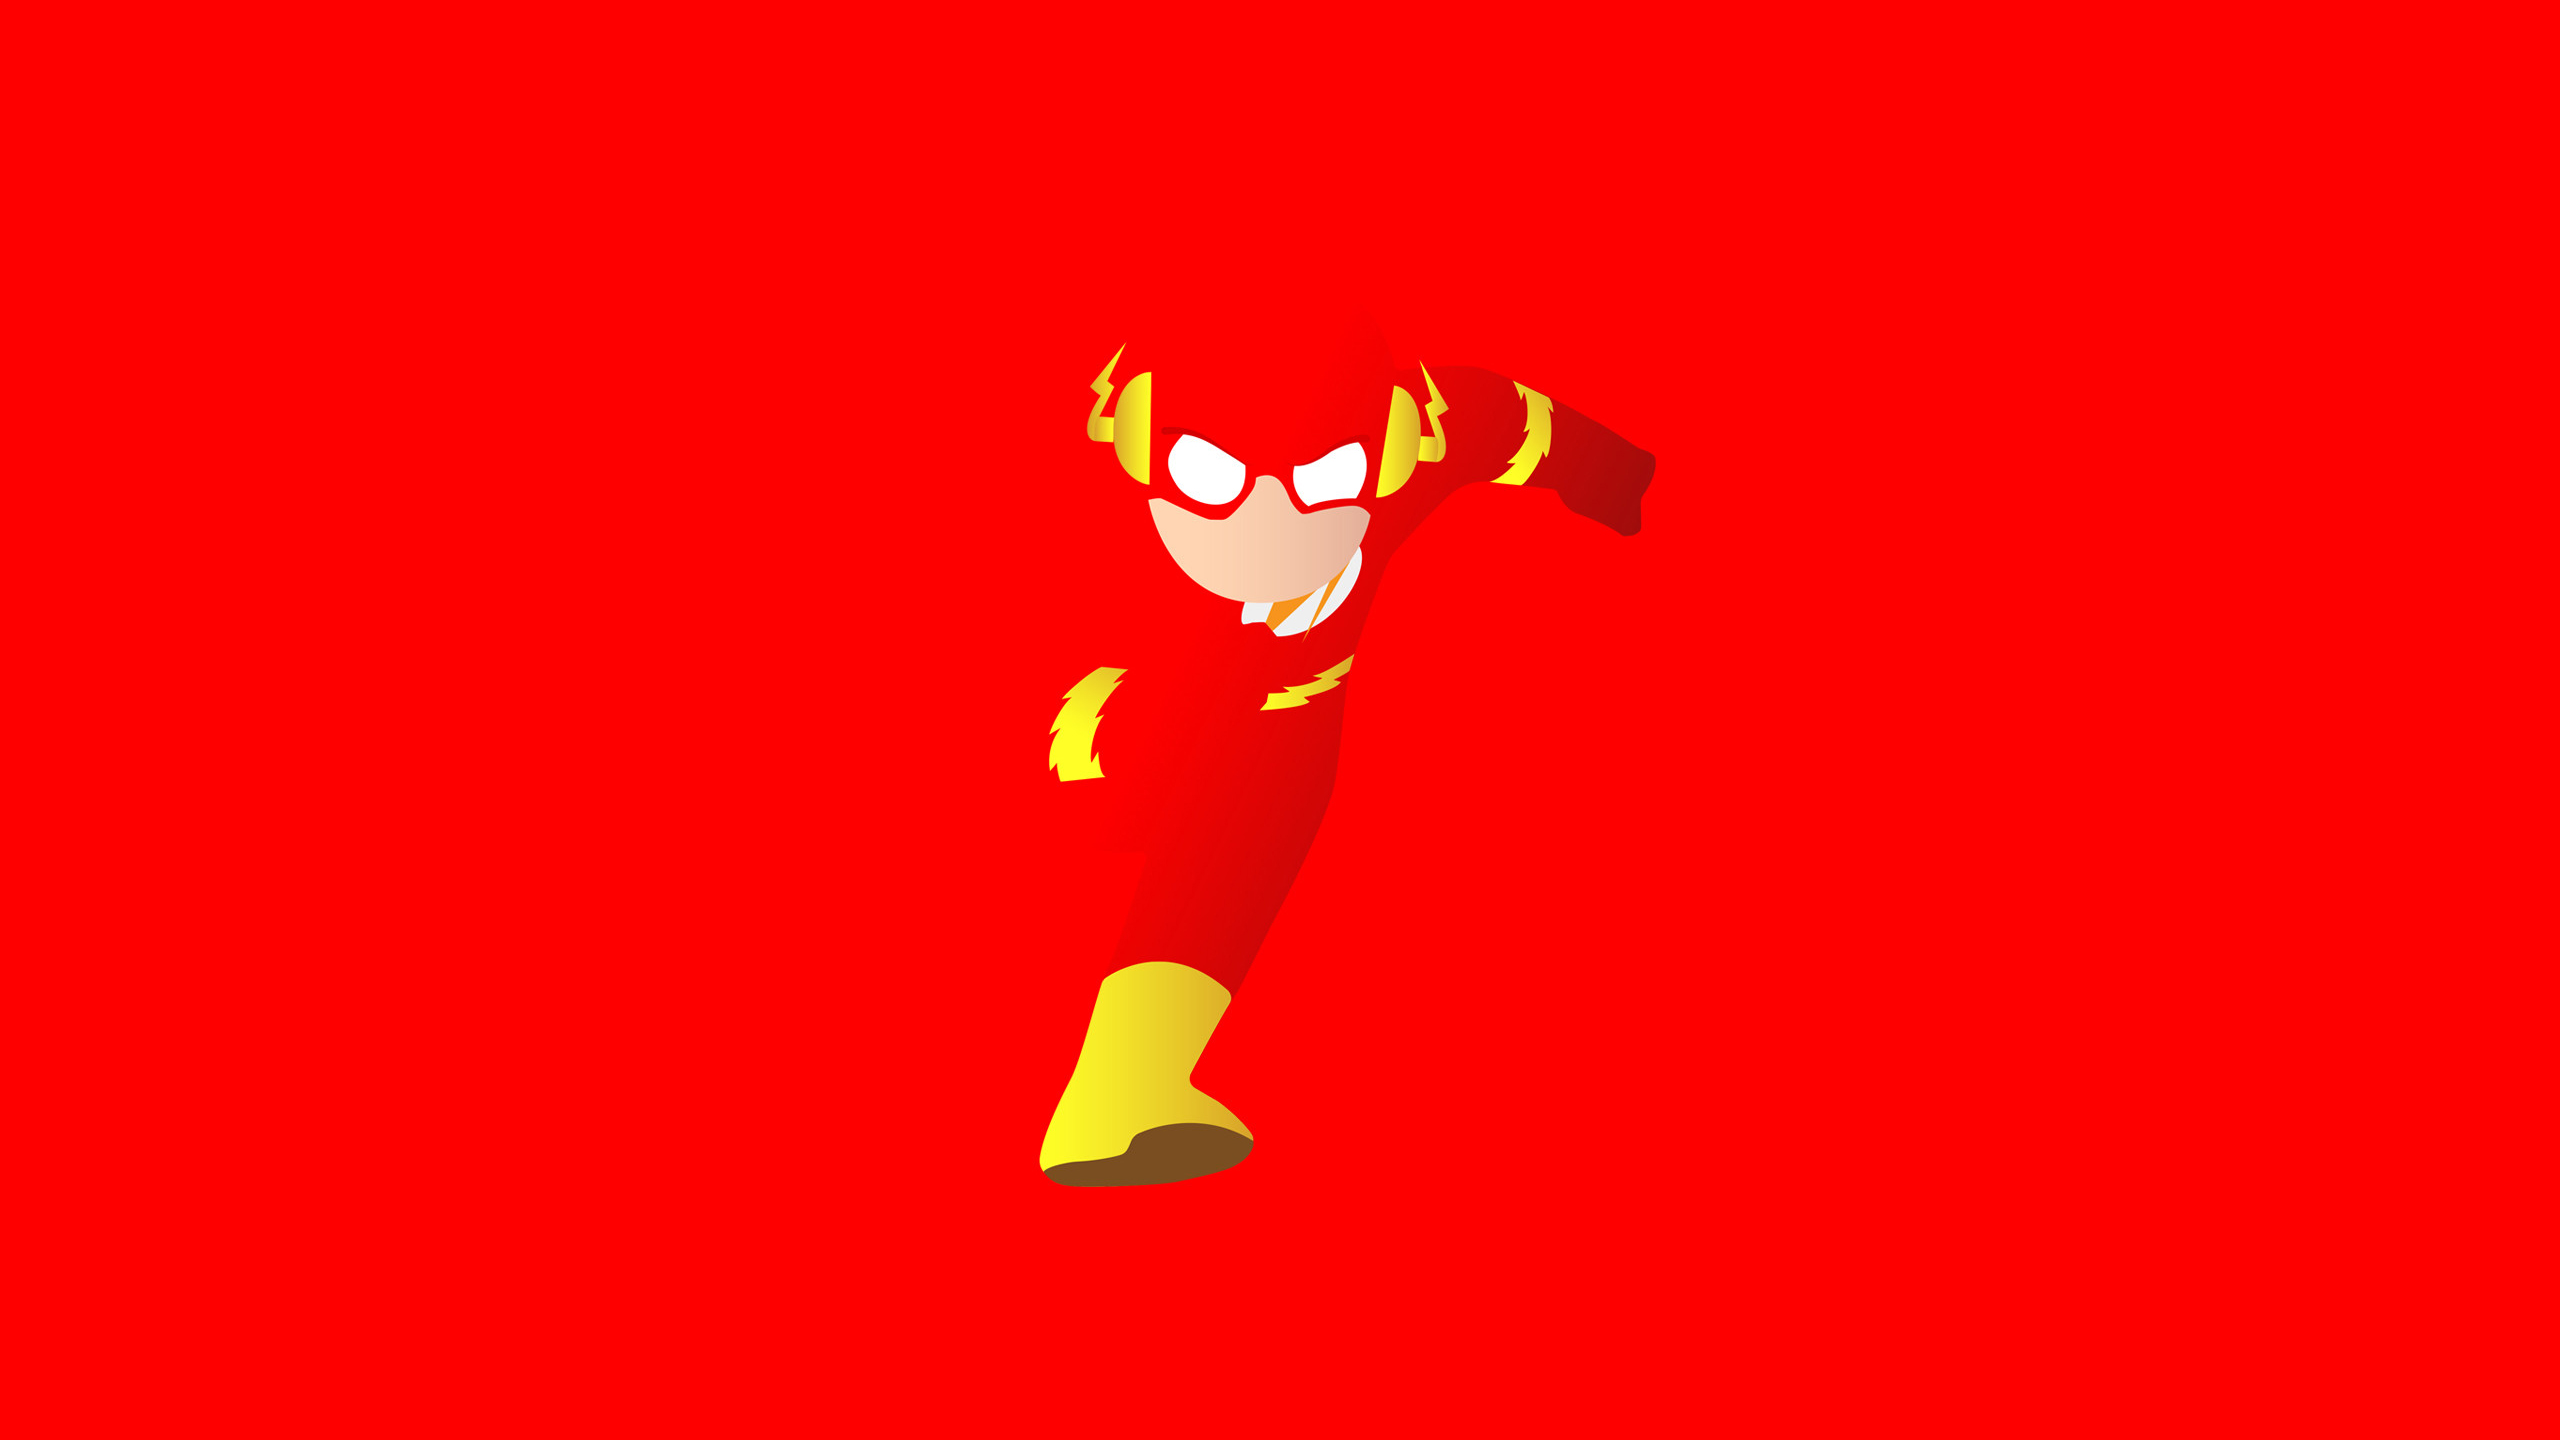 The Flash Minimal Wallpapers Hd Wallpapers